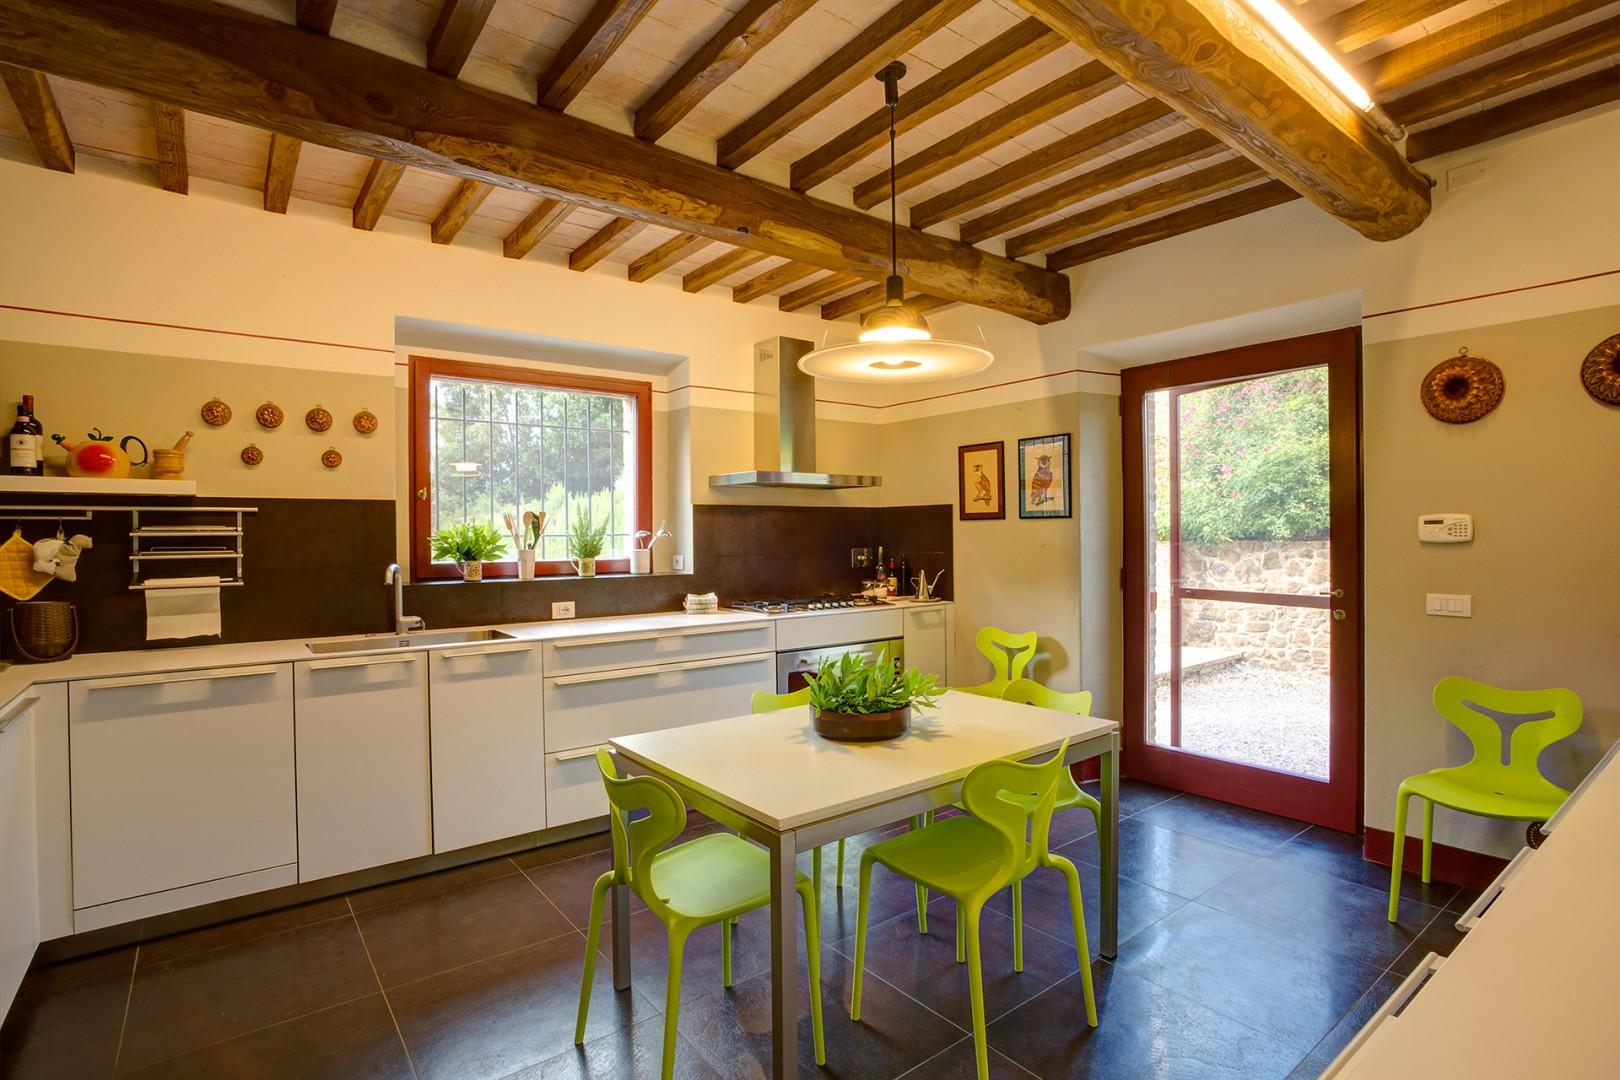 Cheery kitchen is large by Italian standards and fully appointed.